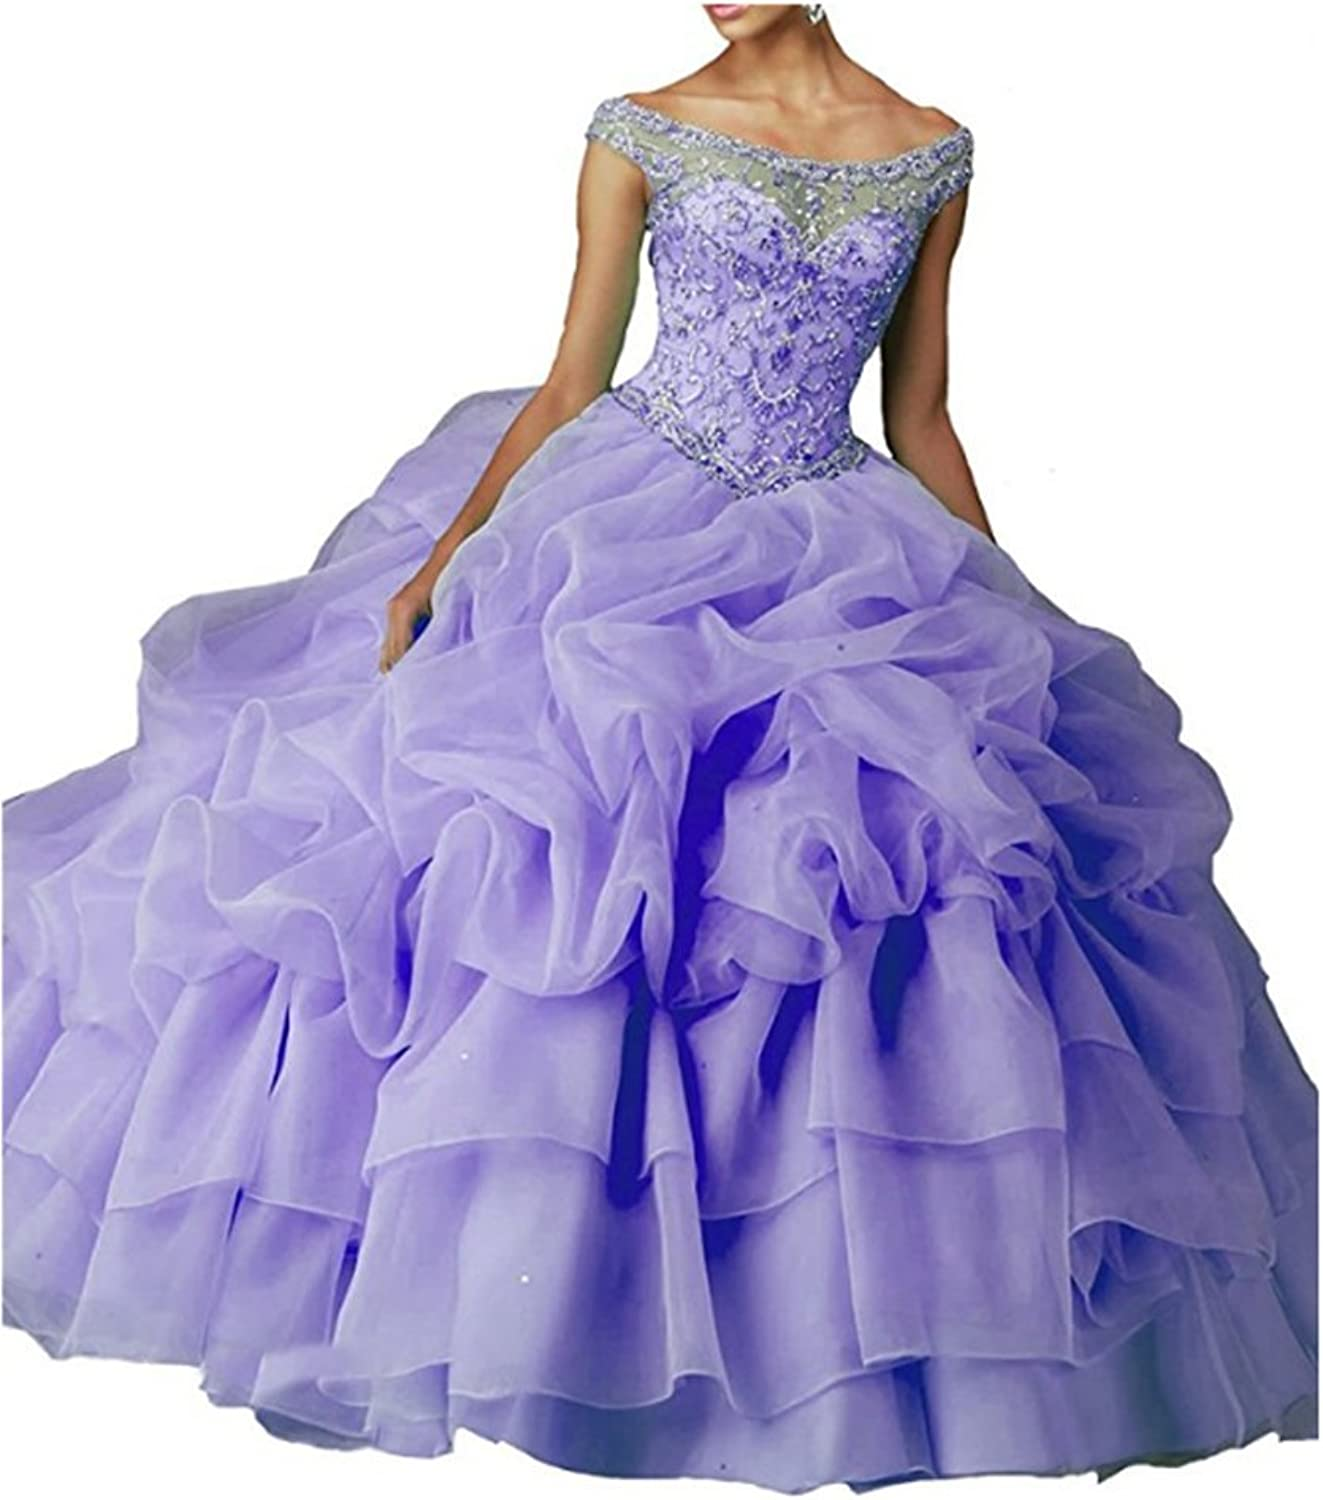 FWVR Women's 2017 Crystals Ruffles Corset Ball Gown Prom Quinceanera Dresses